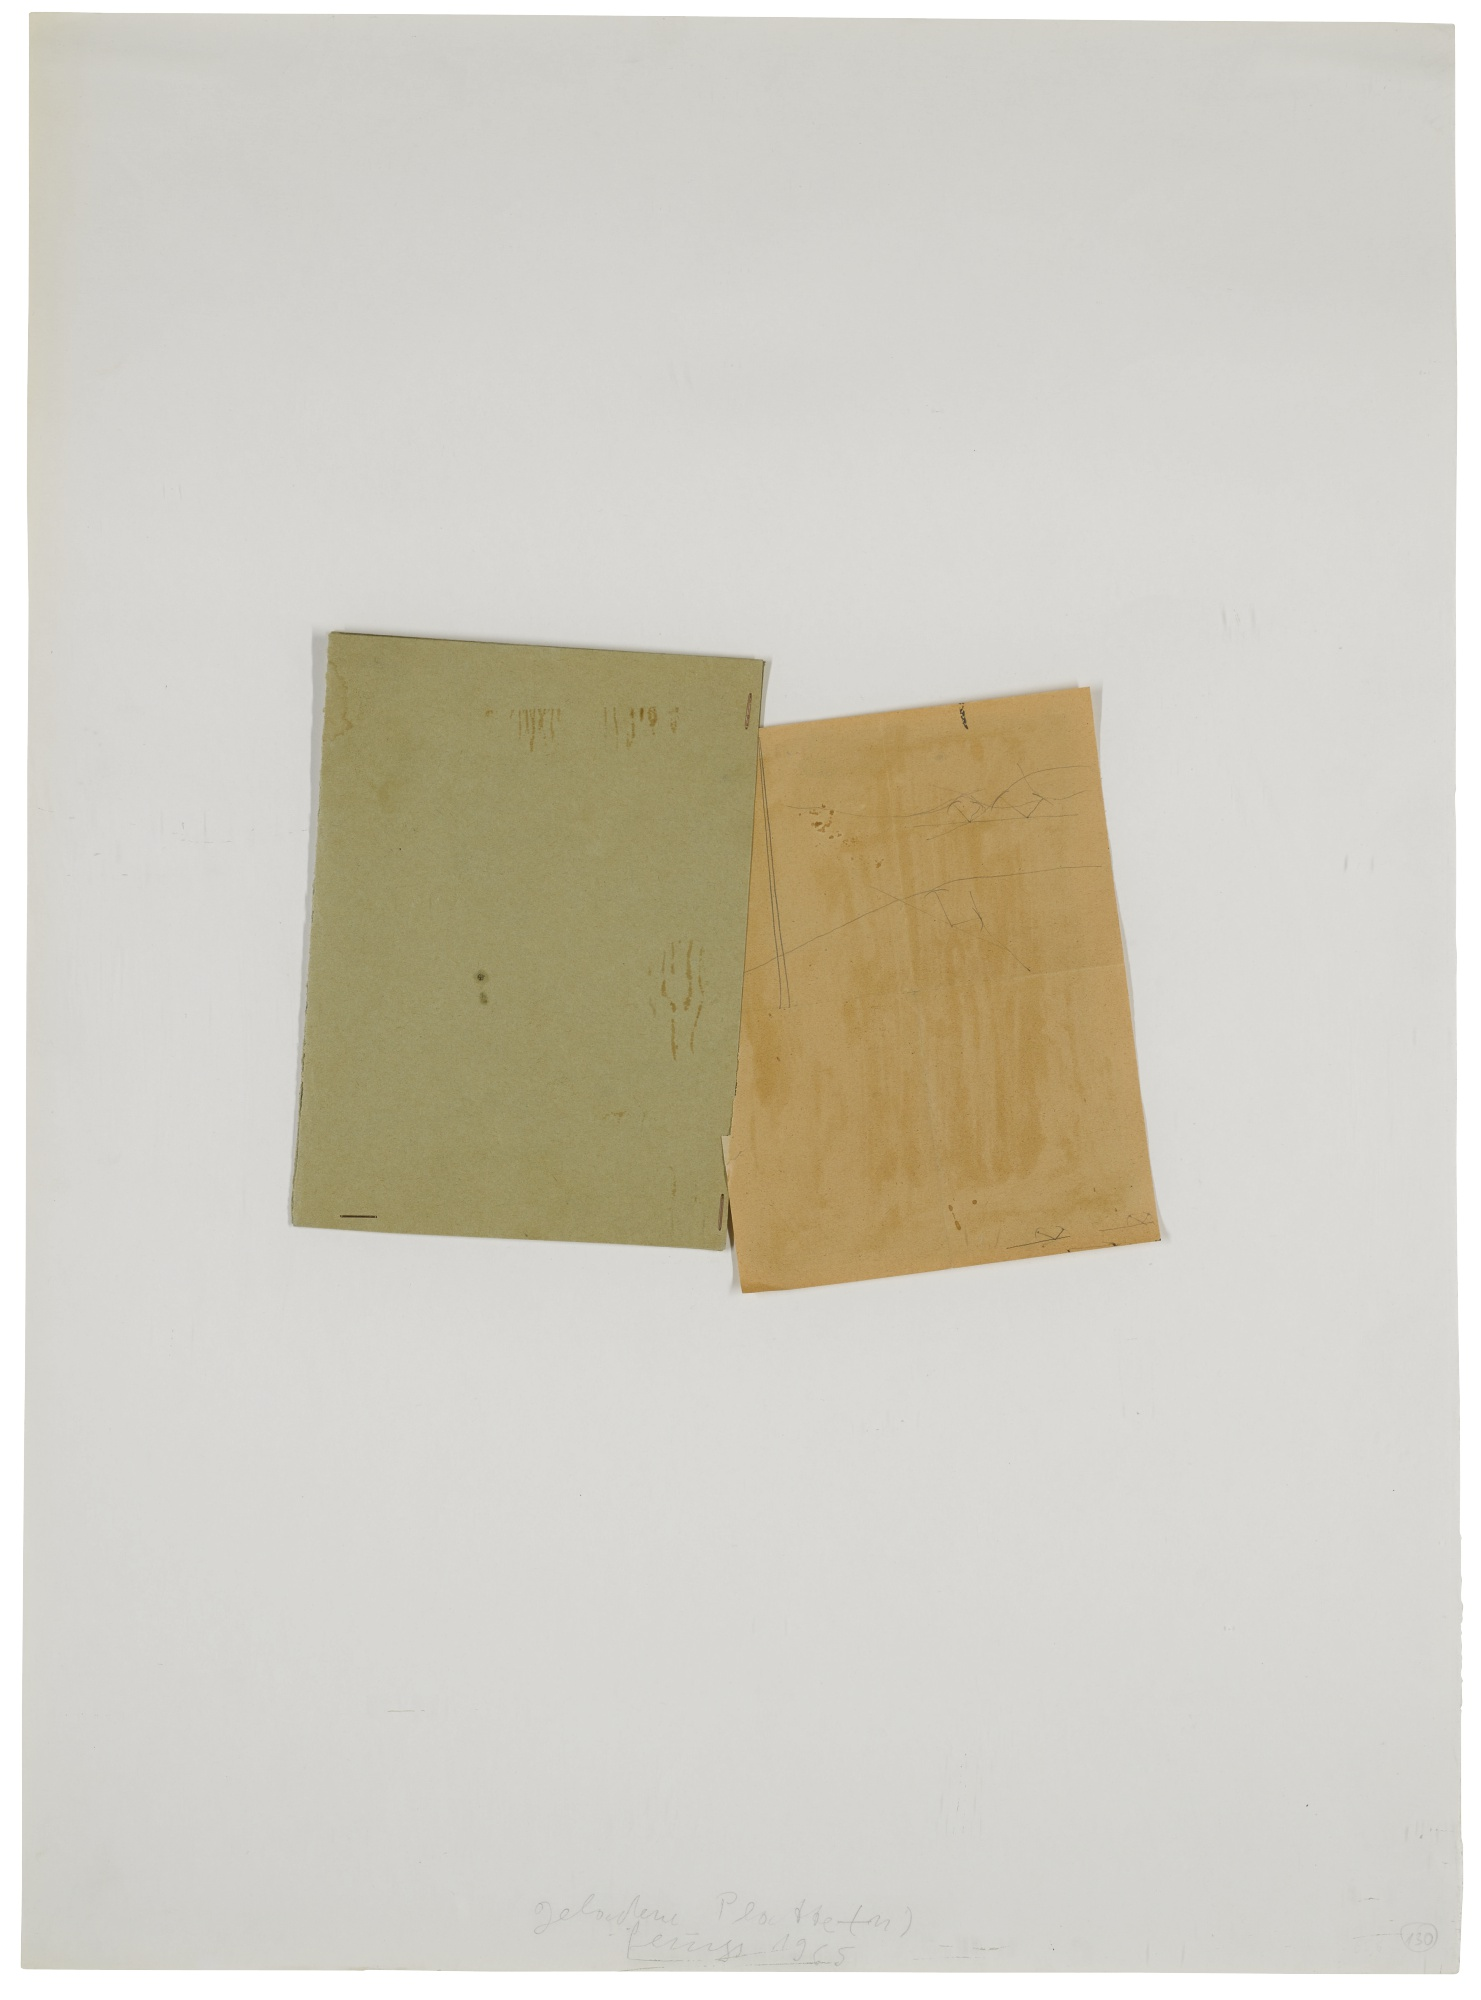 Joseph Beuys-Geladene Platte(-N) [Loaded Plate(-S)]-1965